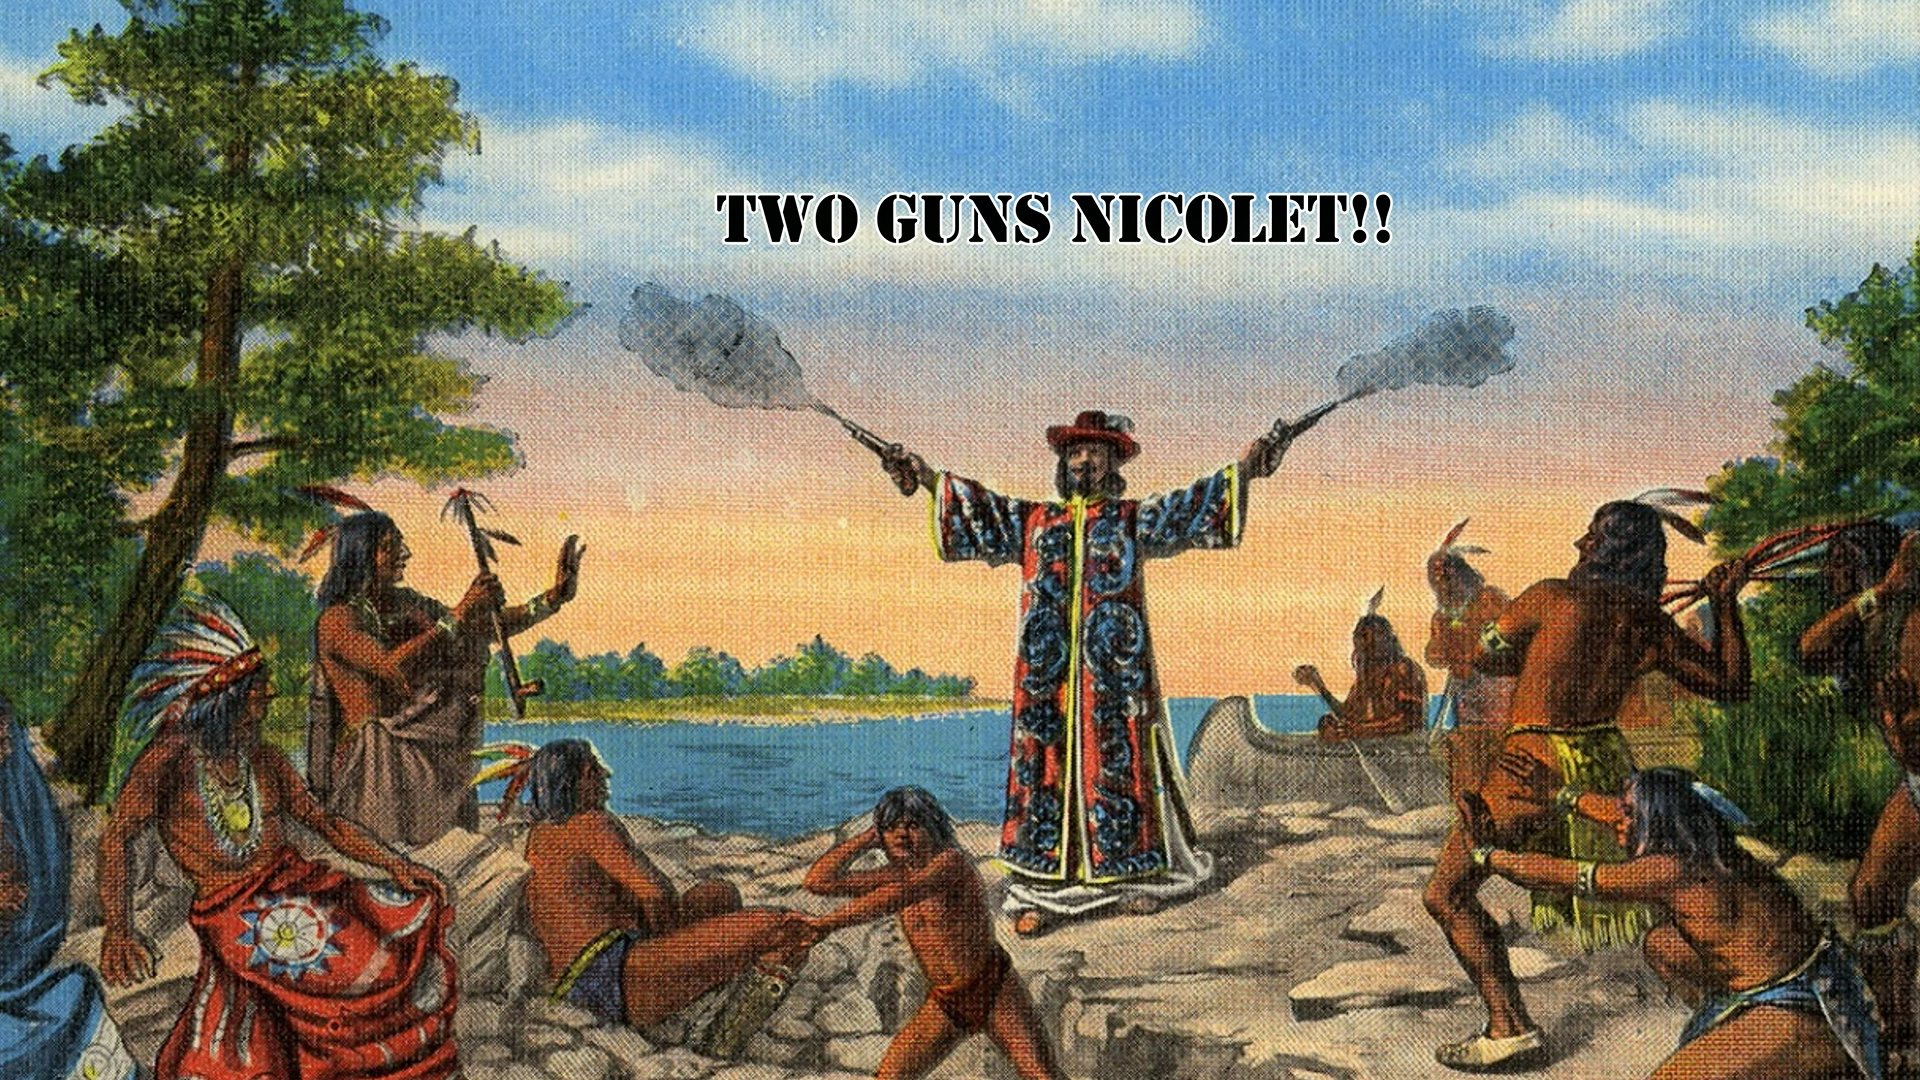 French explorer Jean Nicolet had the first written usage of the word 'Sioux'. Every painting I could find of him shows him firing off 2 guns. As the first White man many Natives would see, I'm sure he loved the attention.